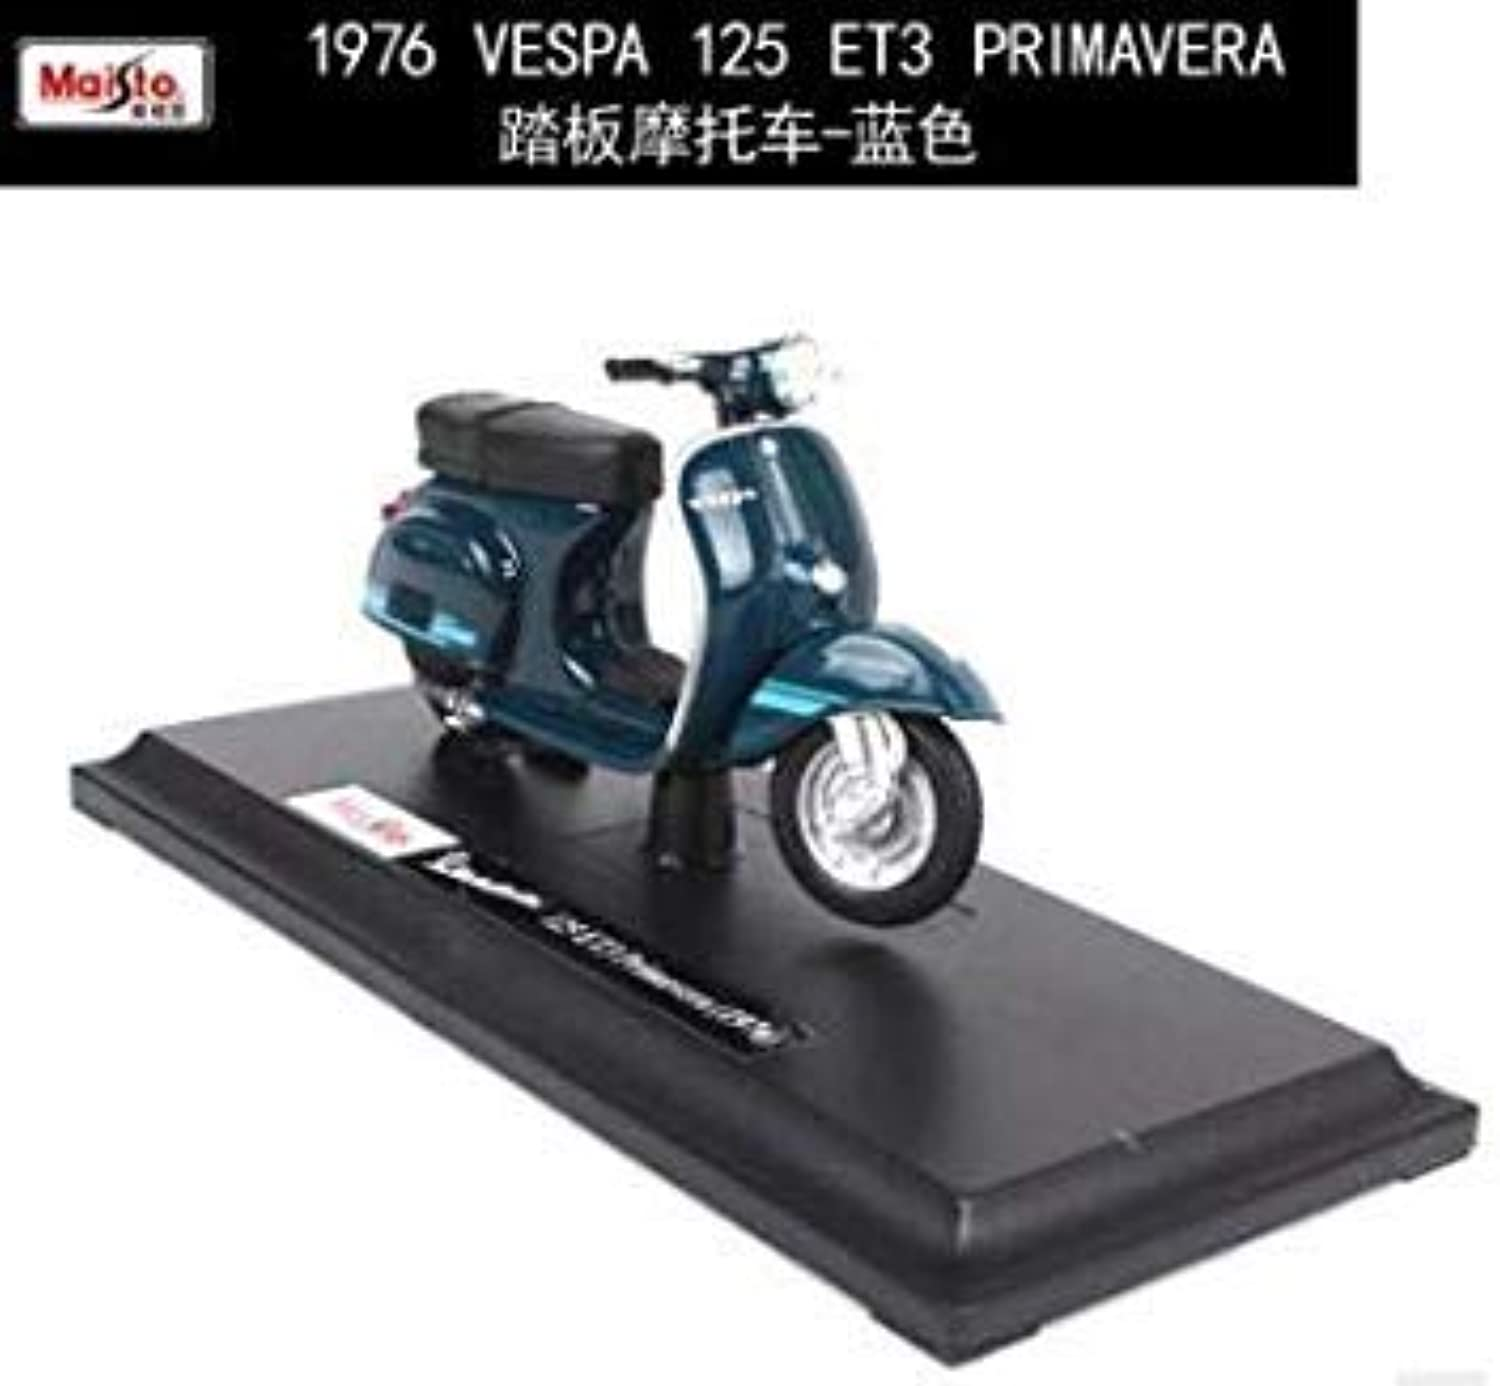 Cheap Kids Toys 1 18 Scale 1969VESPA 50 Special Motorcylce Model Vehicles Model Diecast Moto Kids Toys Collection Gifts 1976 bluee